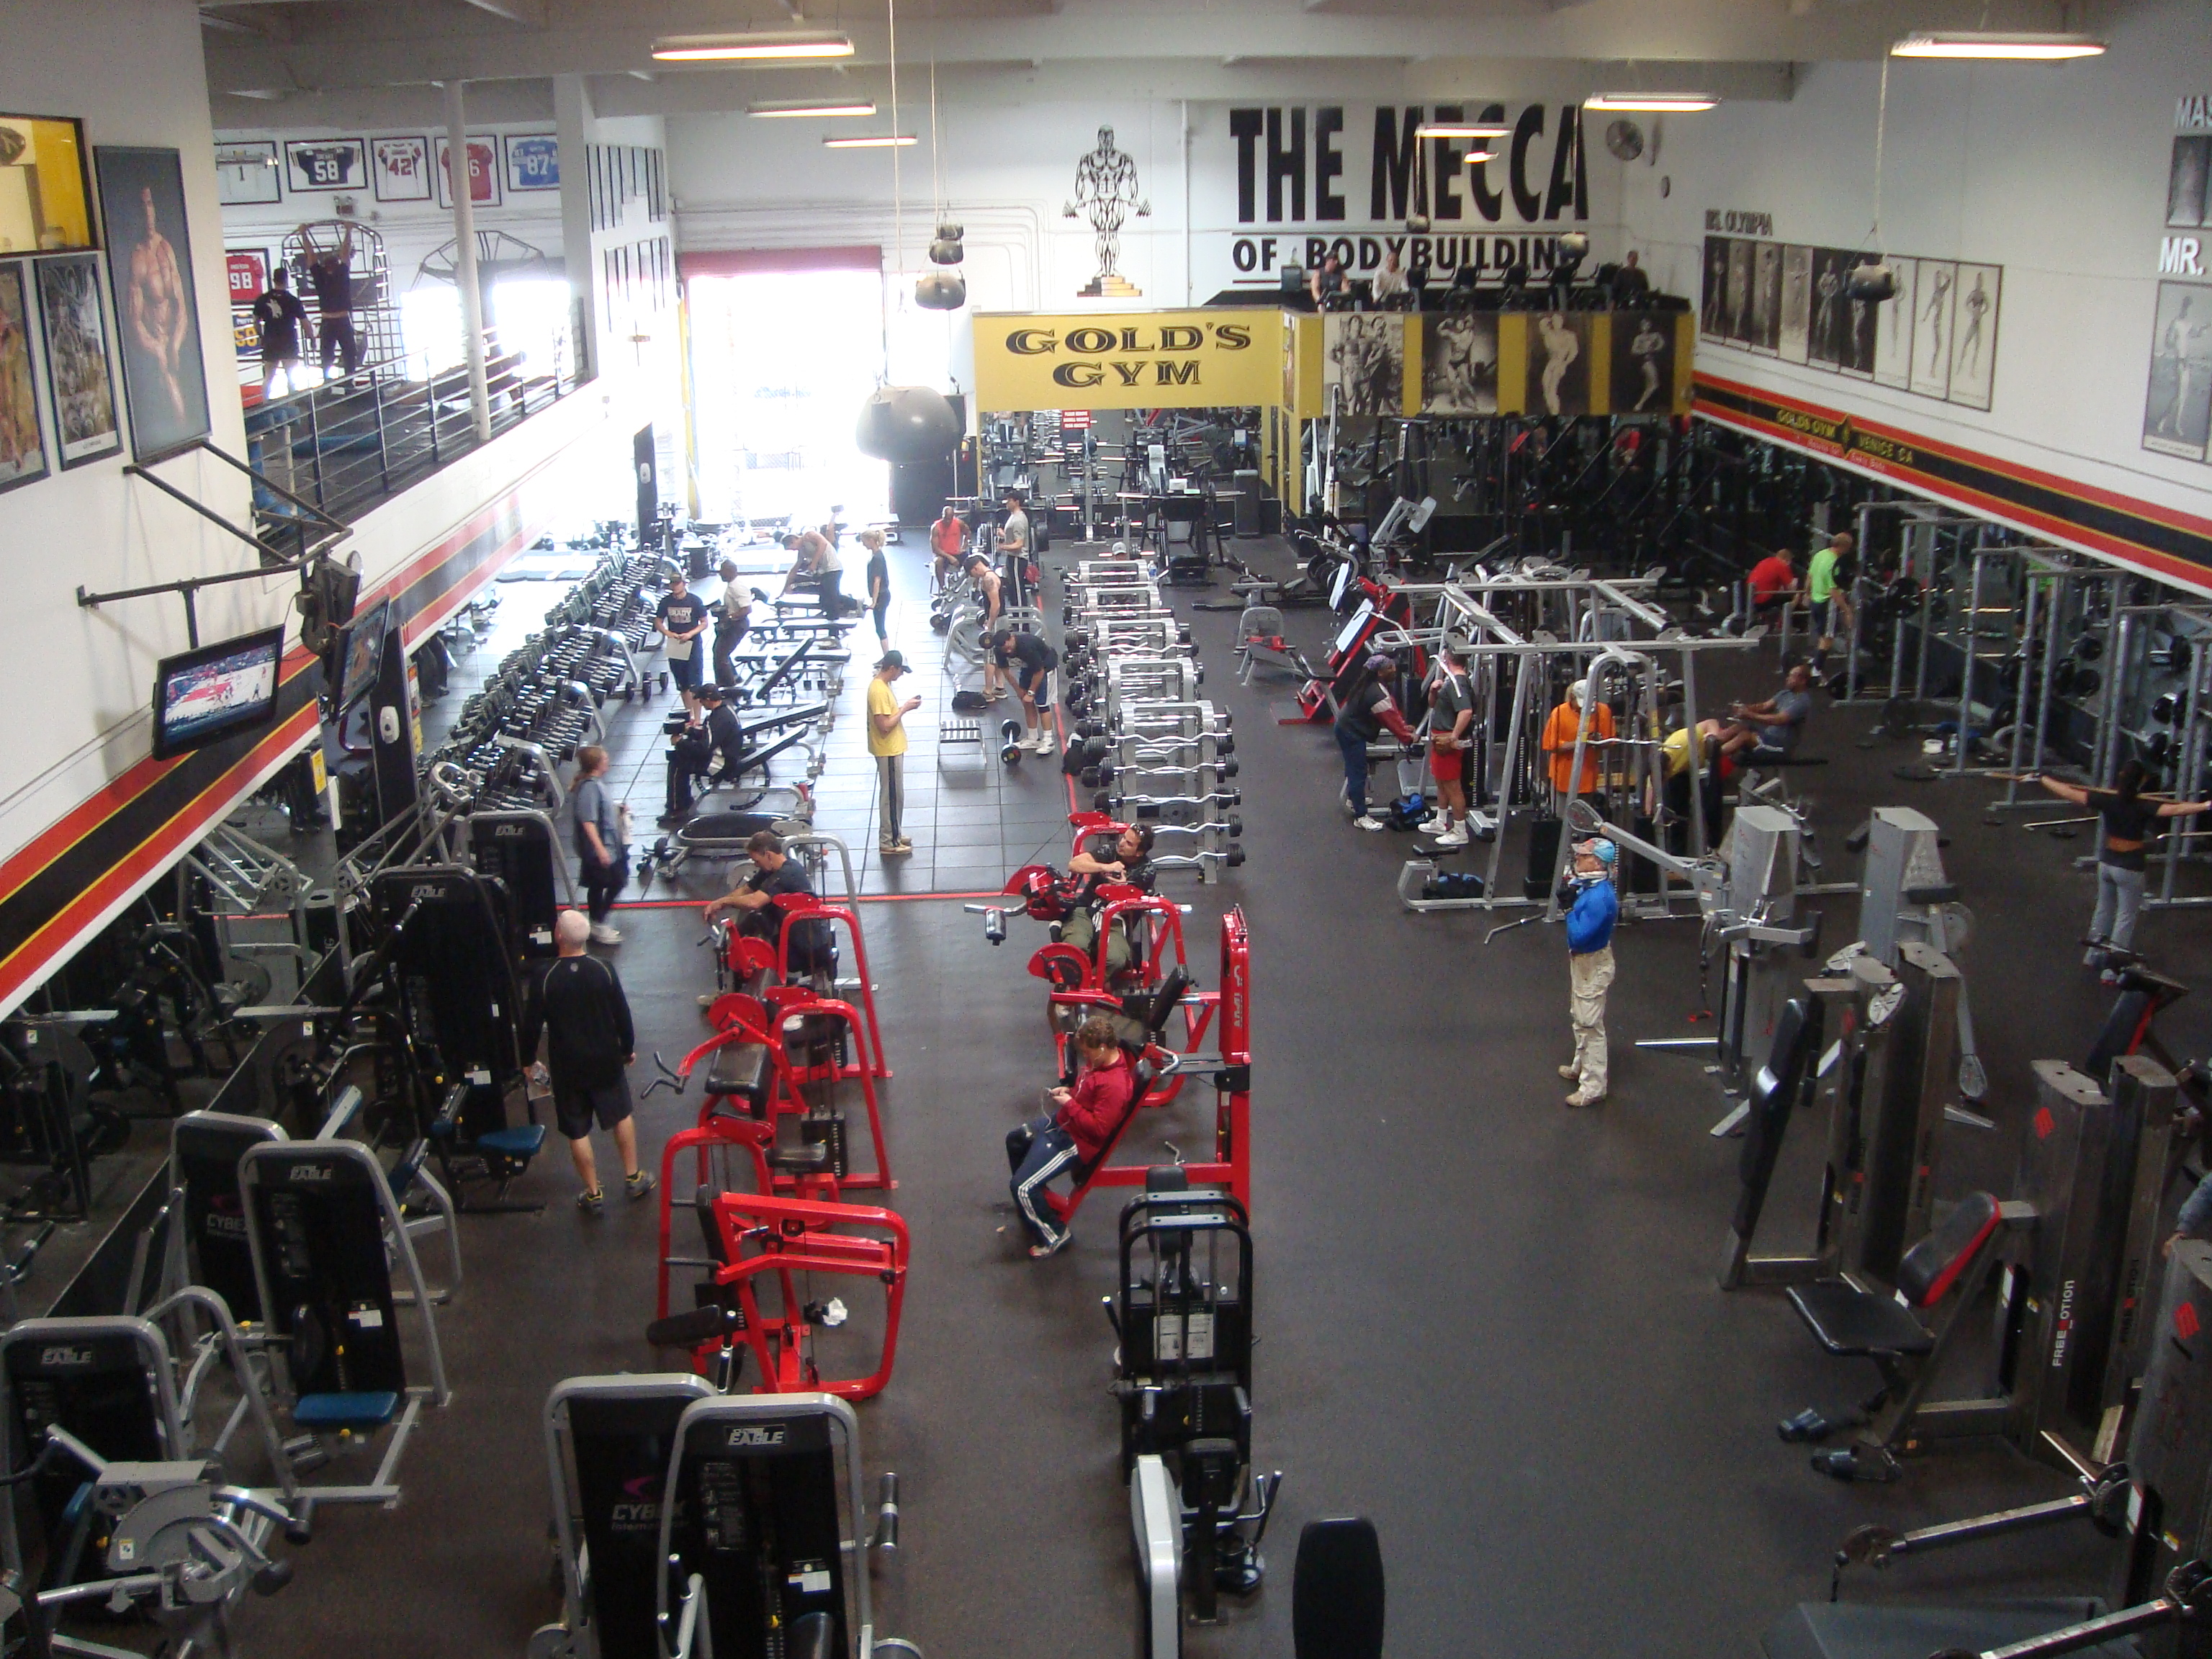 Gold's Gym – Venice, CA: The Mecca of Bodybuilding